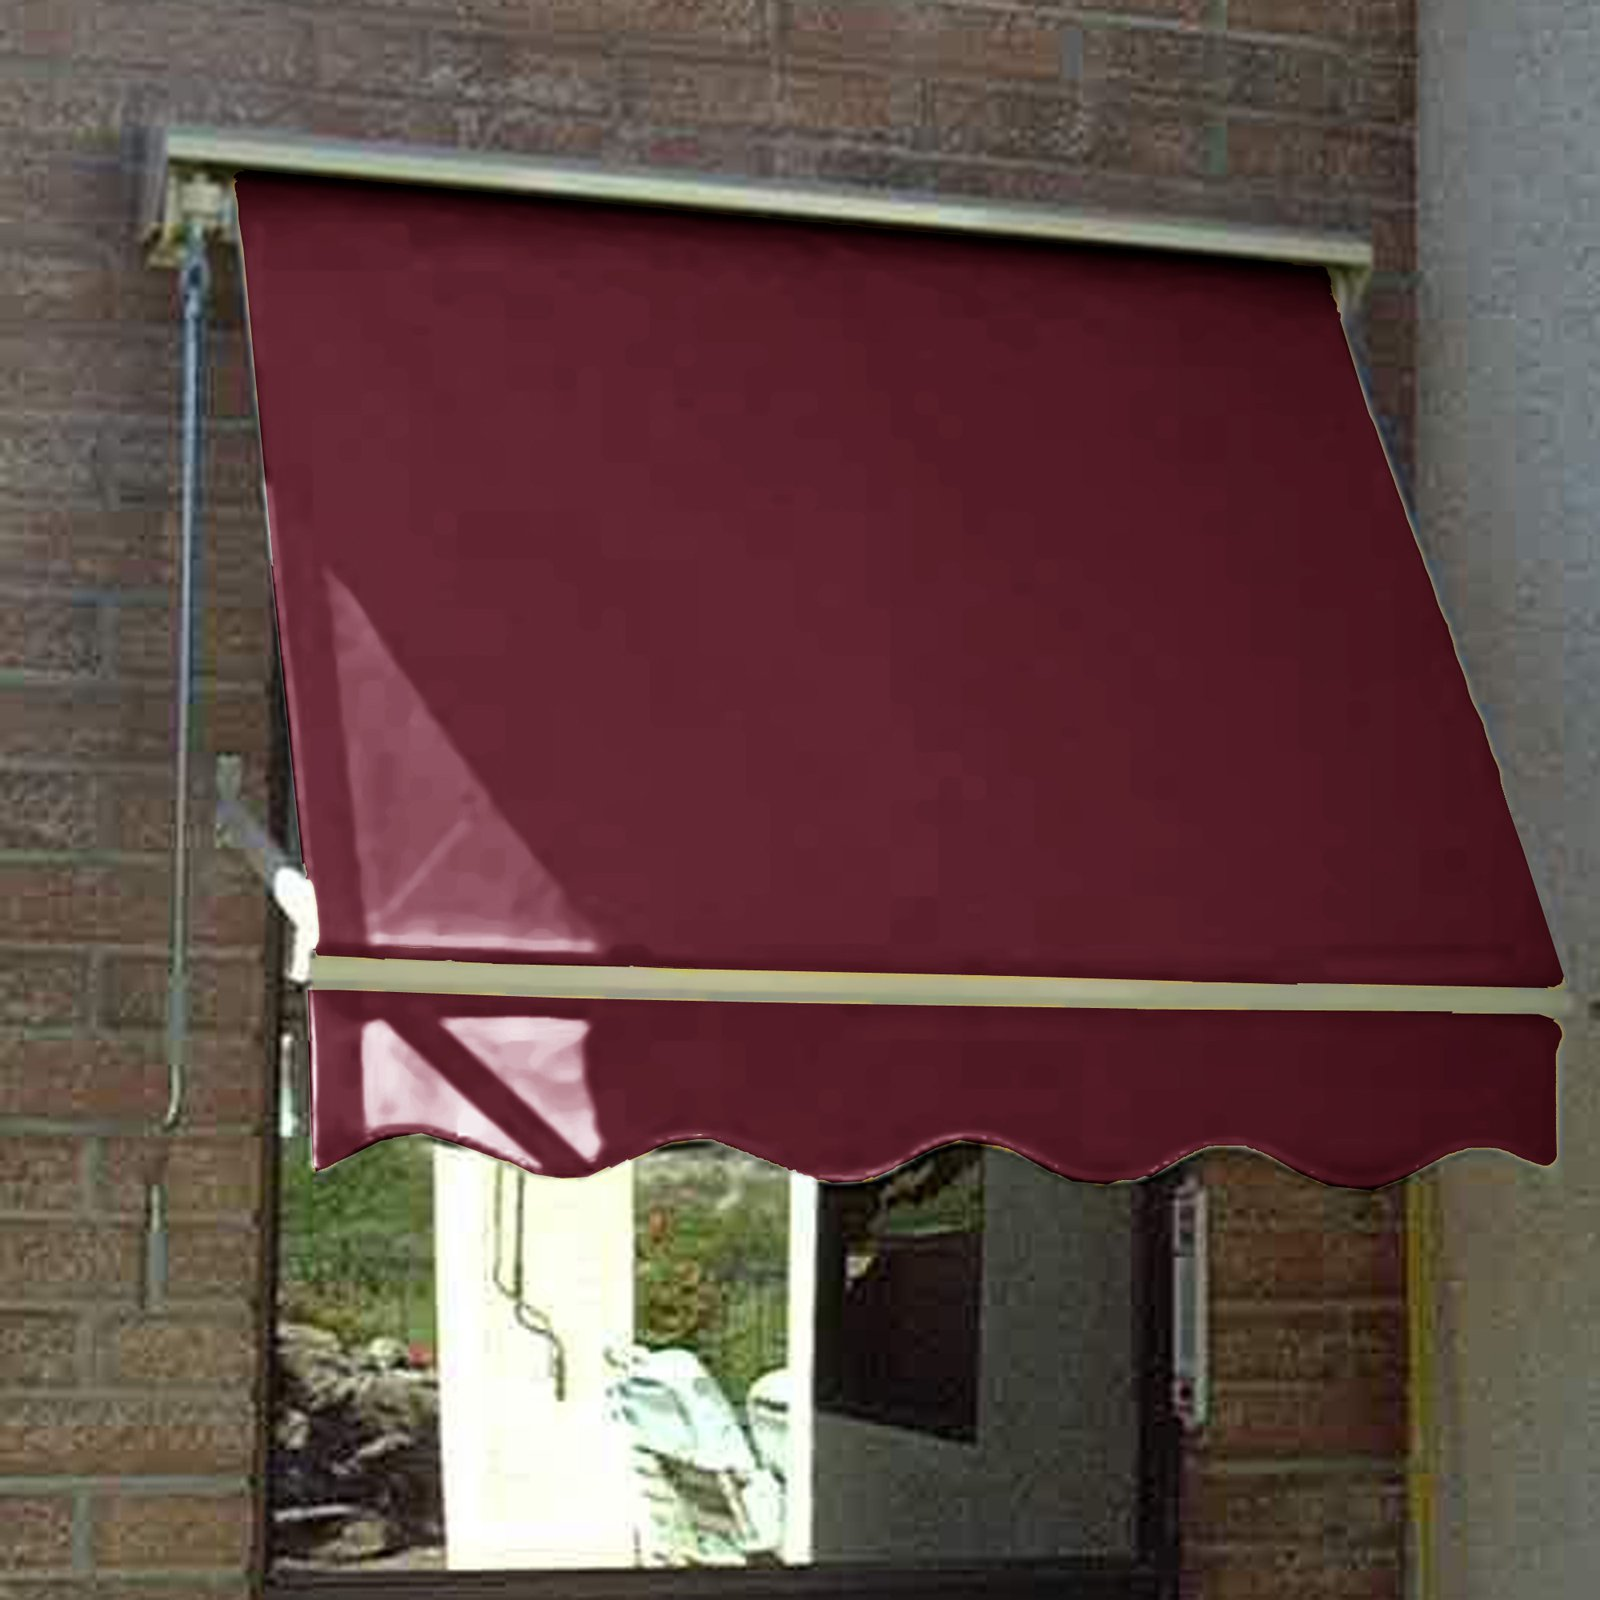 Awntech Nevada 3' Motorized Retractable Slope Awning